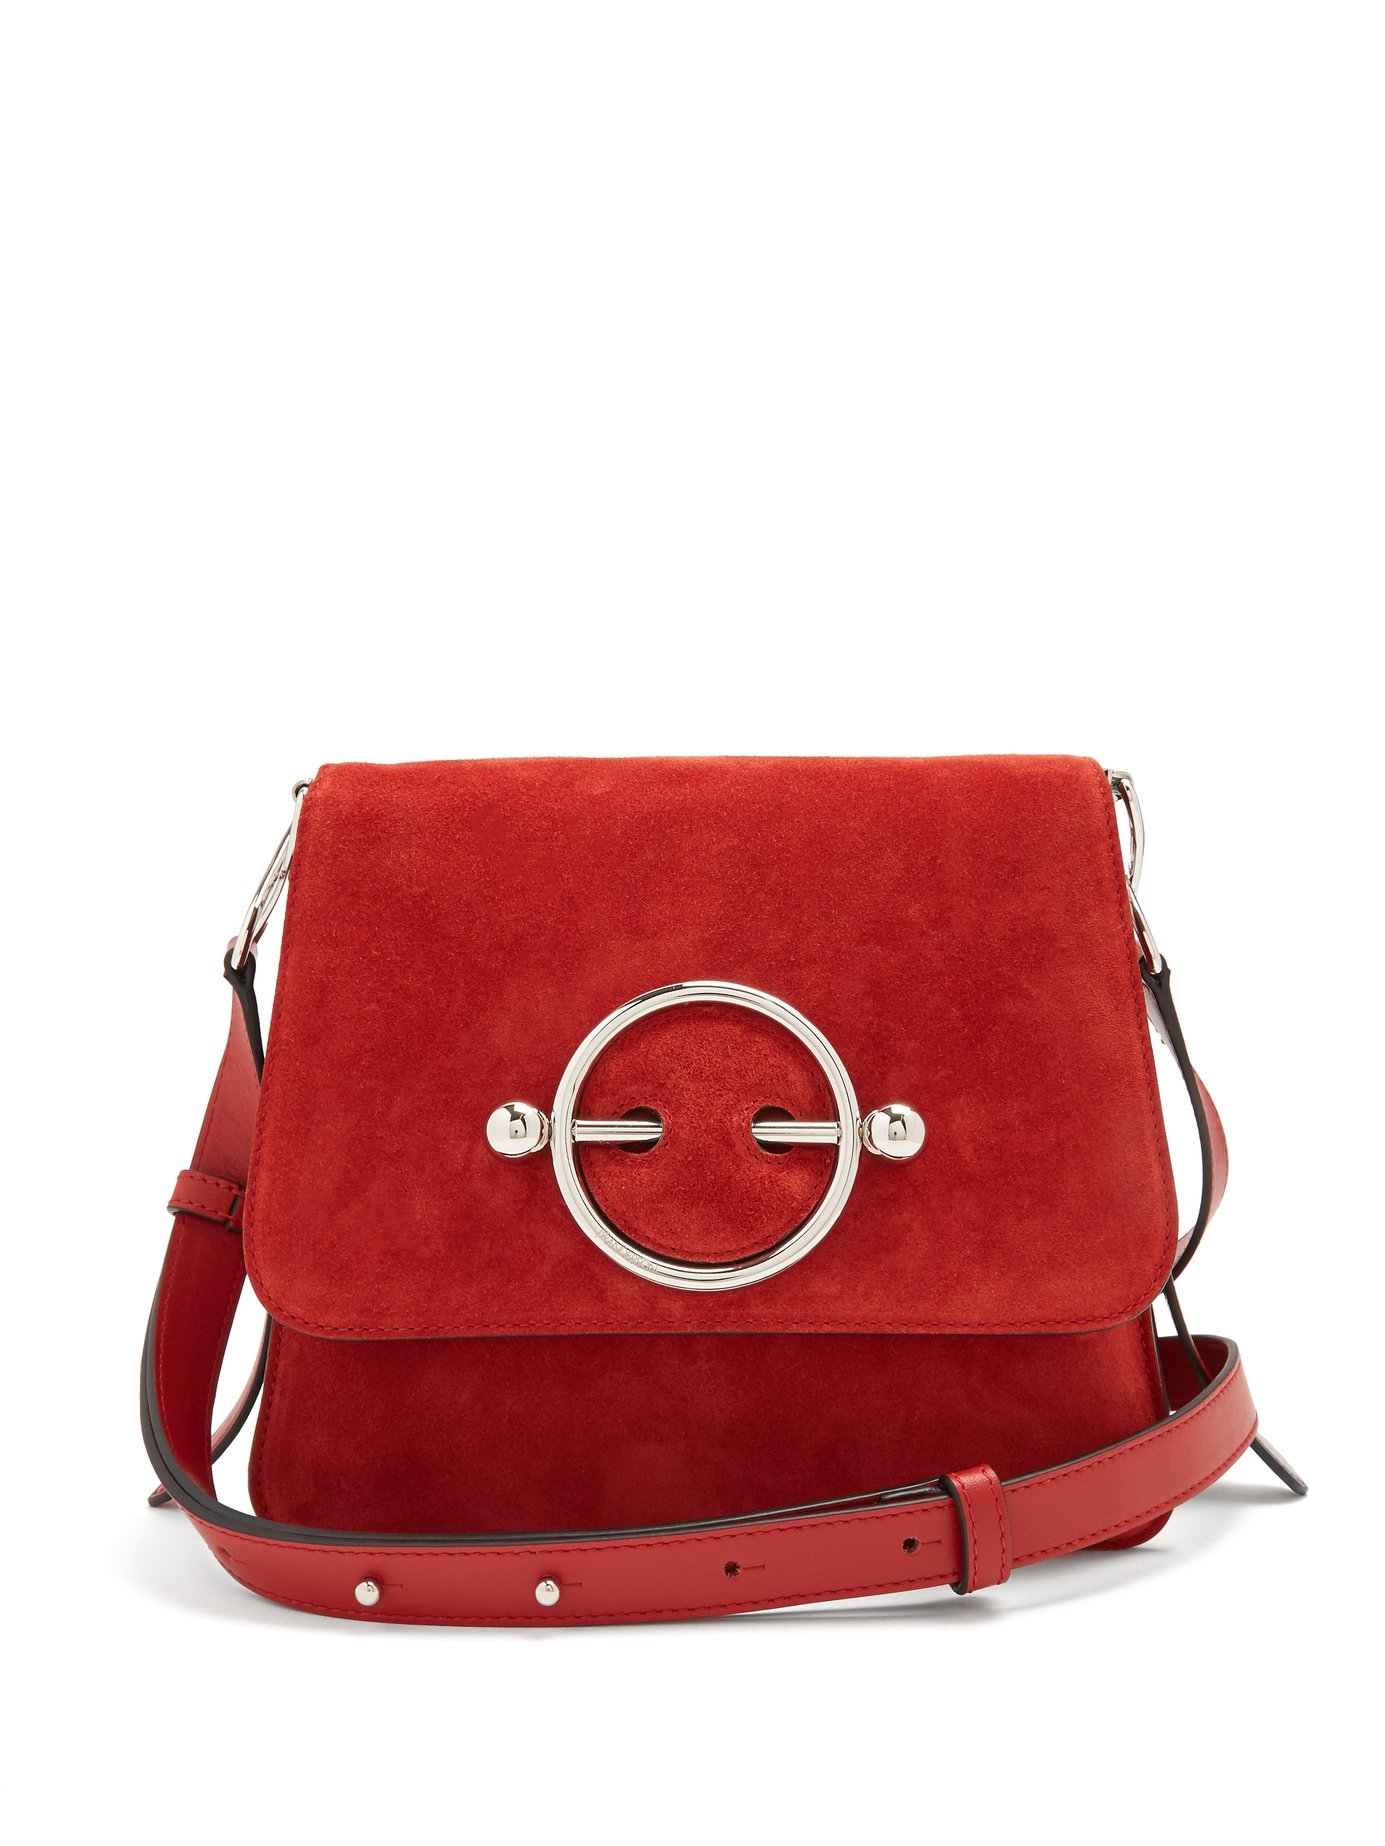 1. Leather bag, £975 by JW Anderson